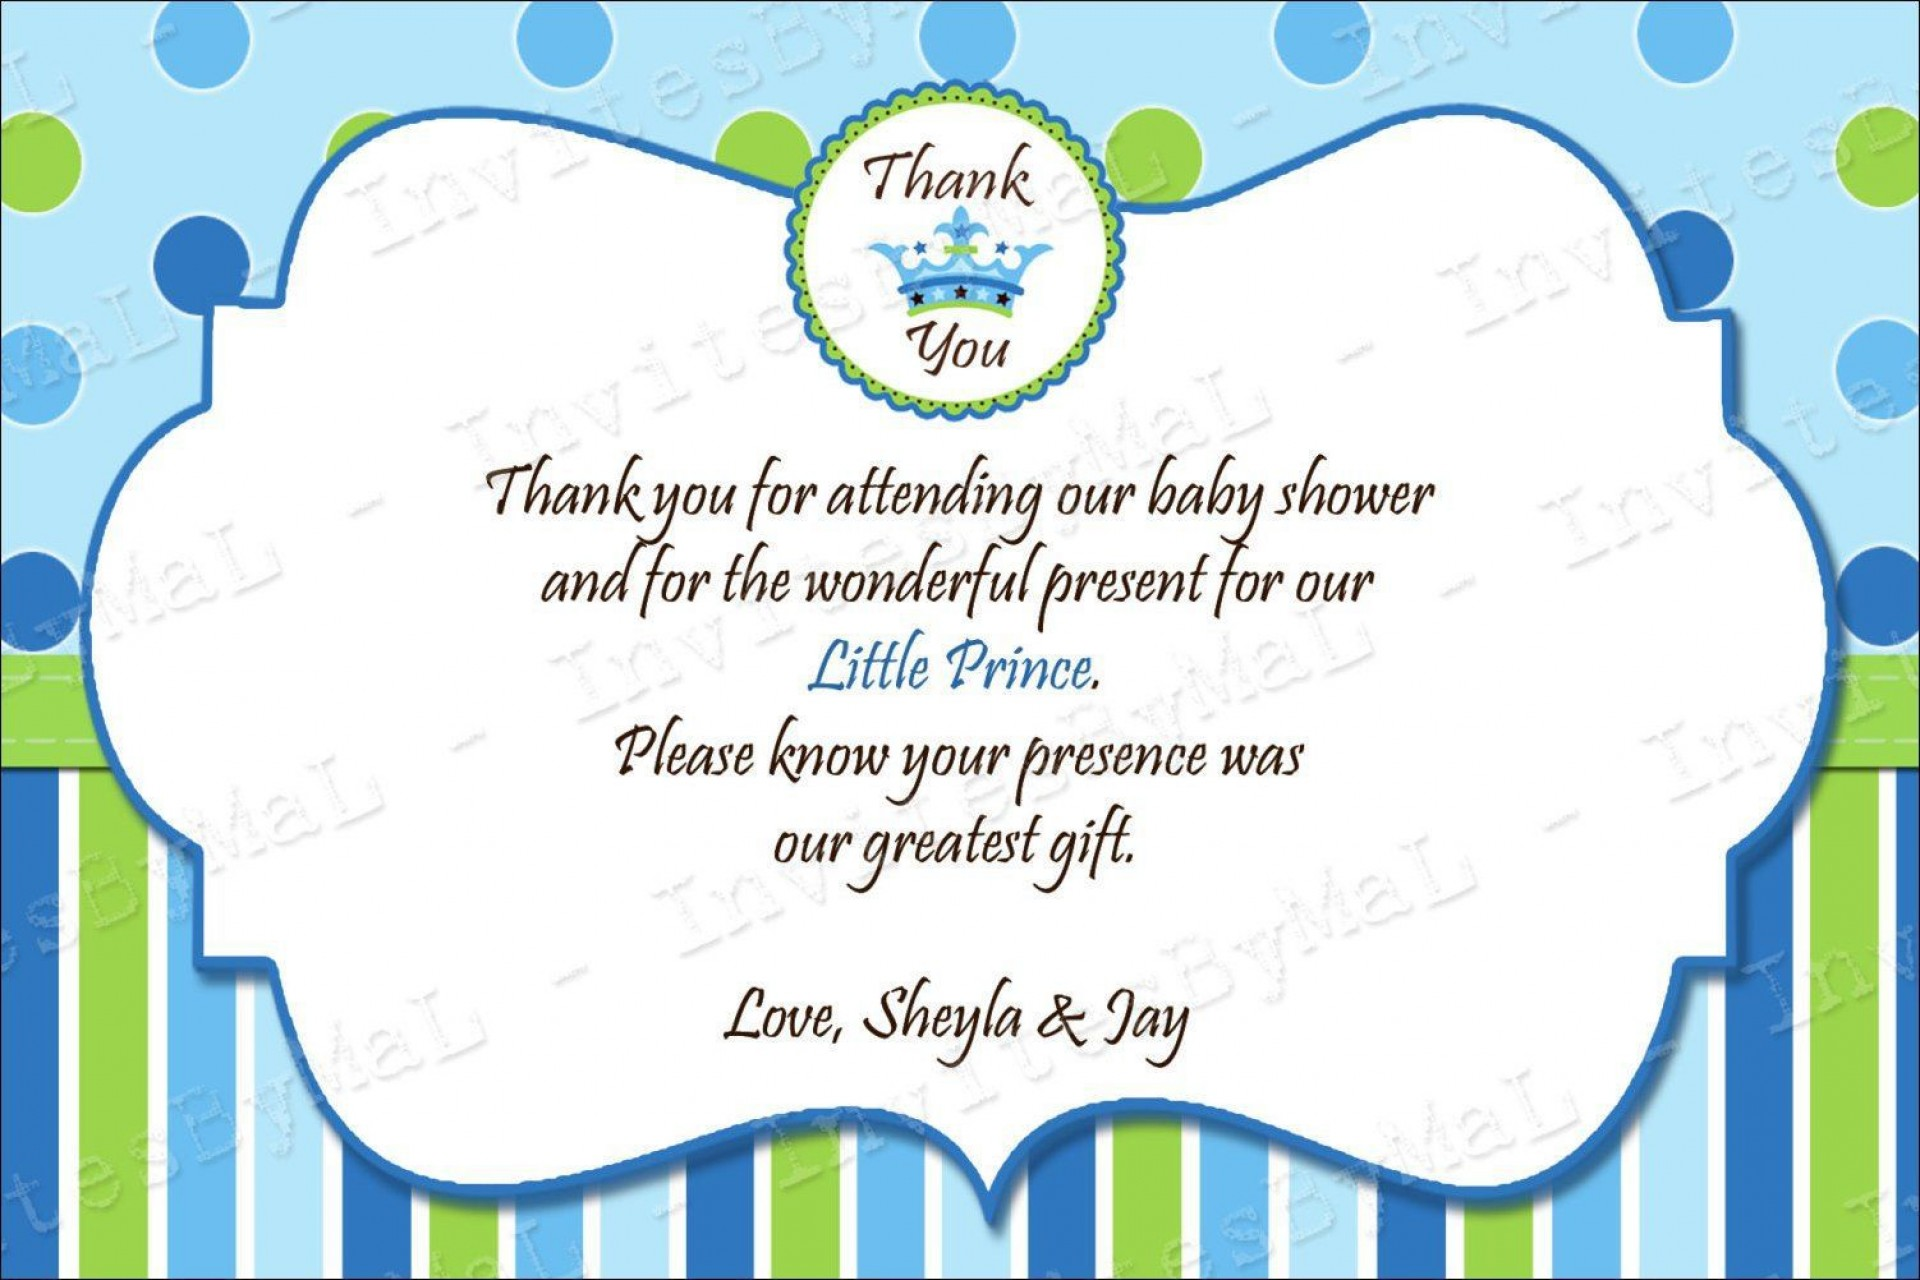 007 Remarkable Thank You Card Wording Baby Shower Gift Photo  For Multiple Group1920